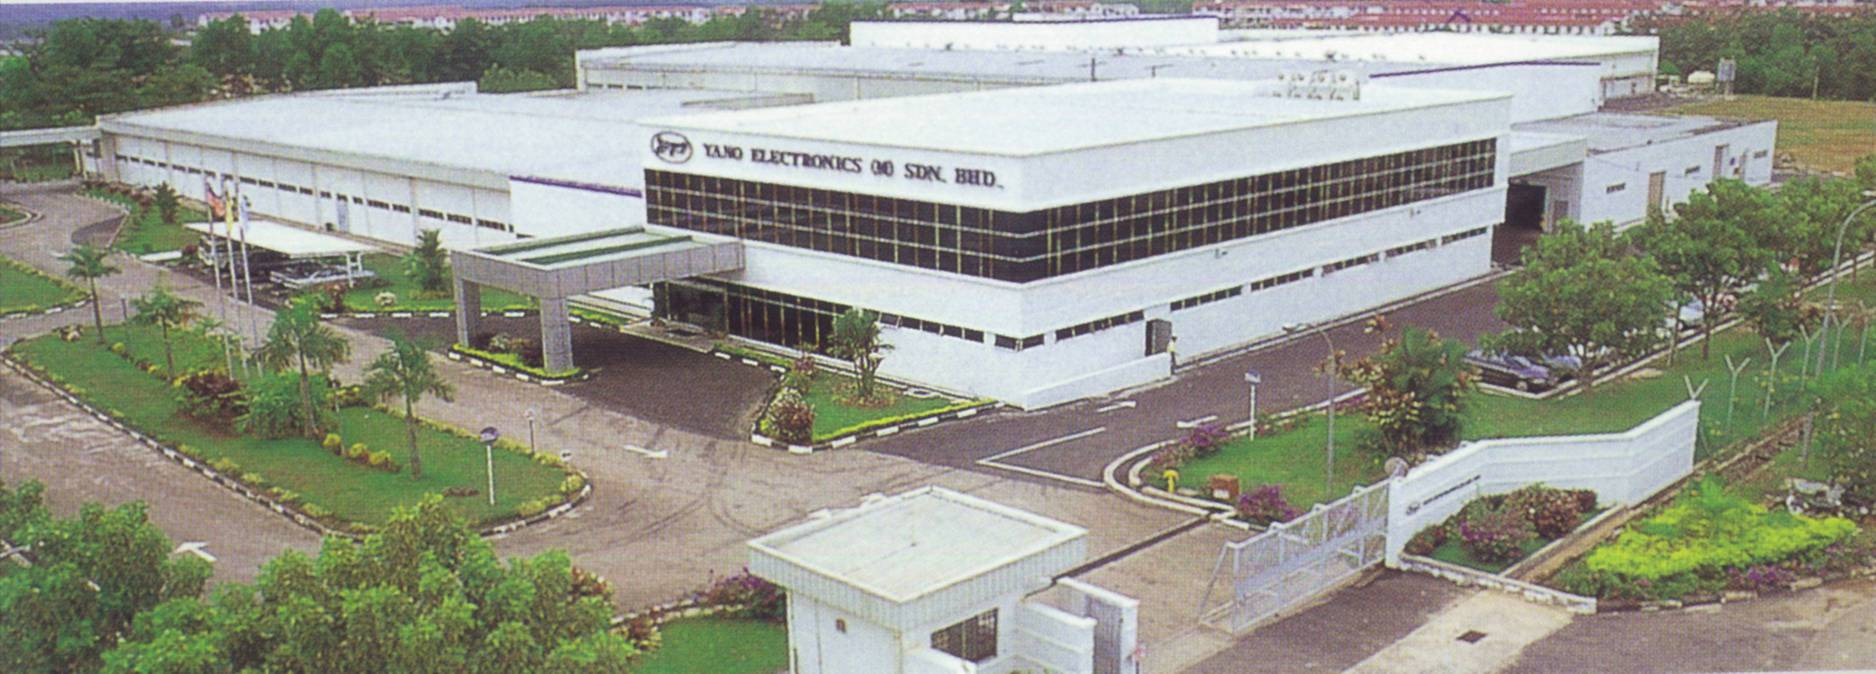 Yano Electronics Factory (1993)